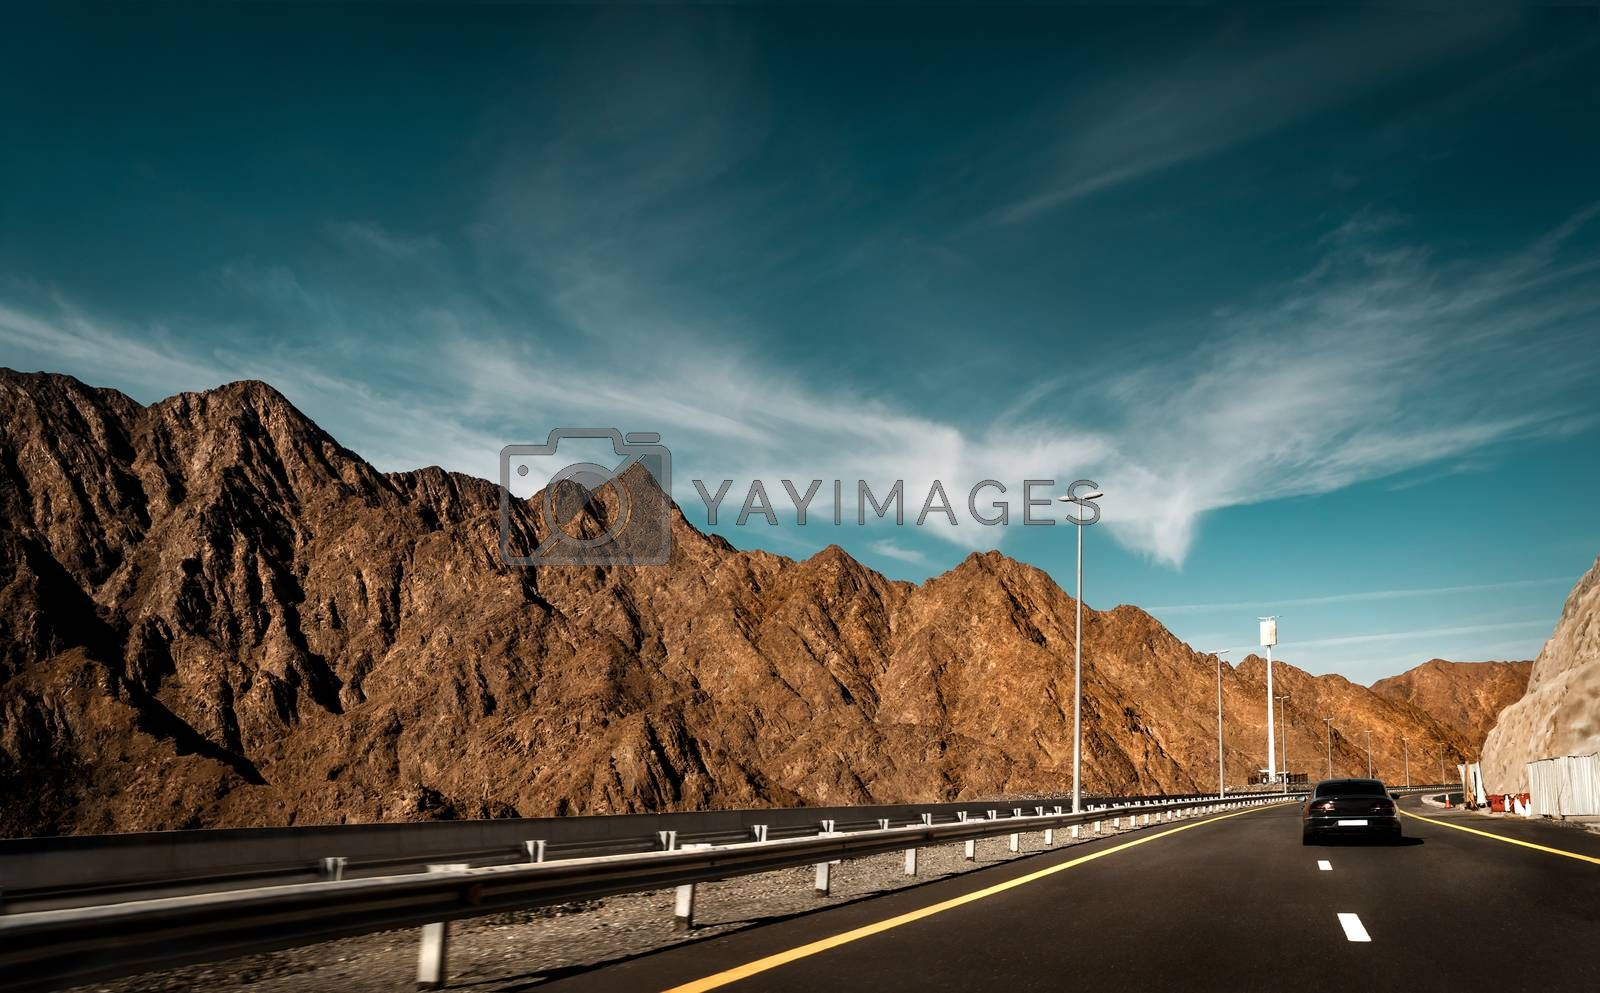 Road trip, car on the highway along beautiful mountains, vacation in Fujeira, UAE